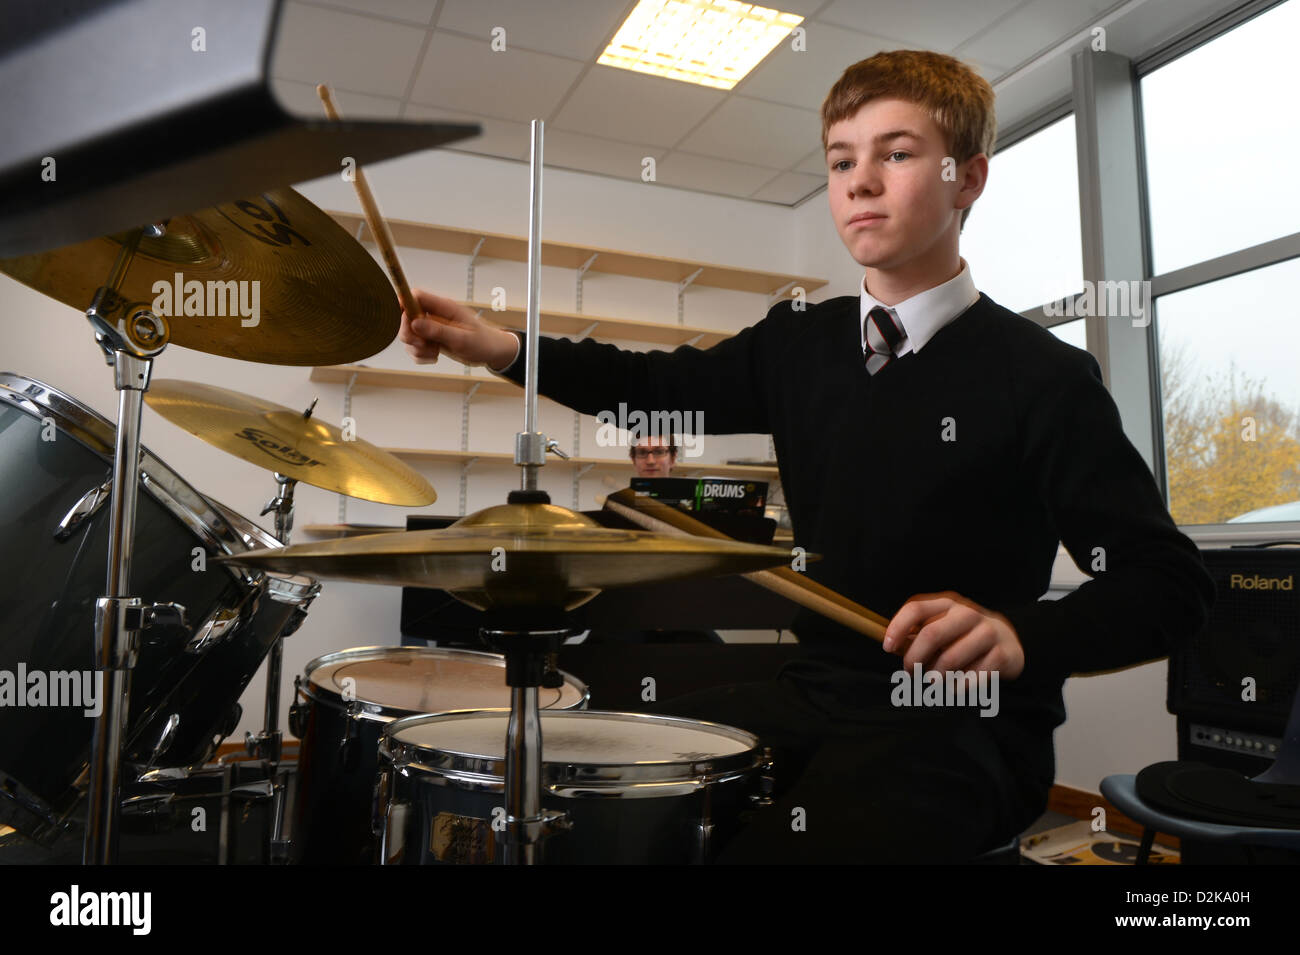 A school boy drumming in a music lesson at Pates Grammar School in Cheltenham, Gloucestershire UK - Stock Image